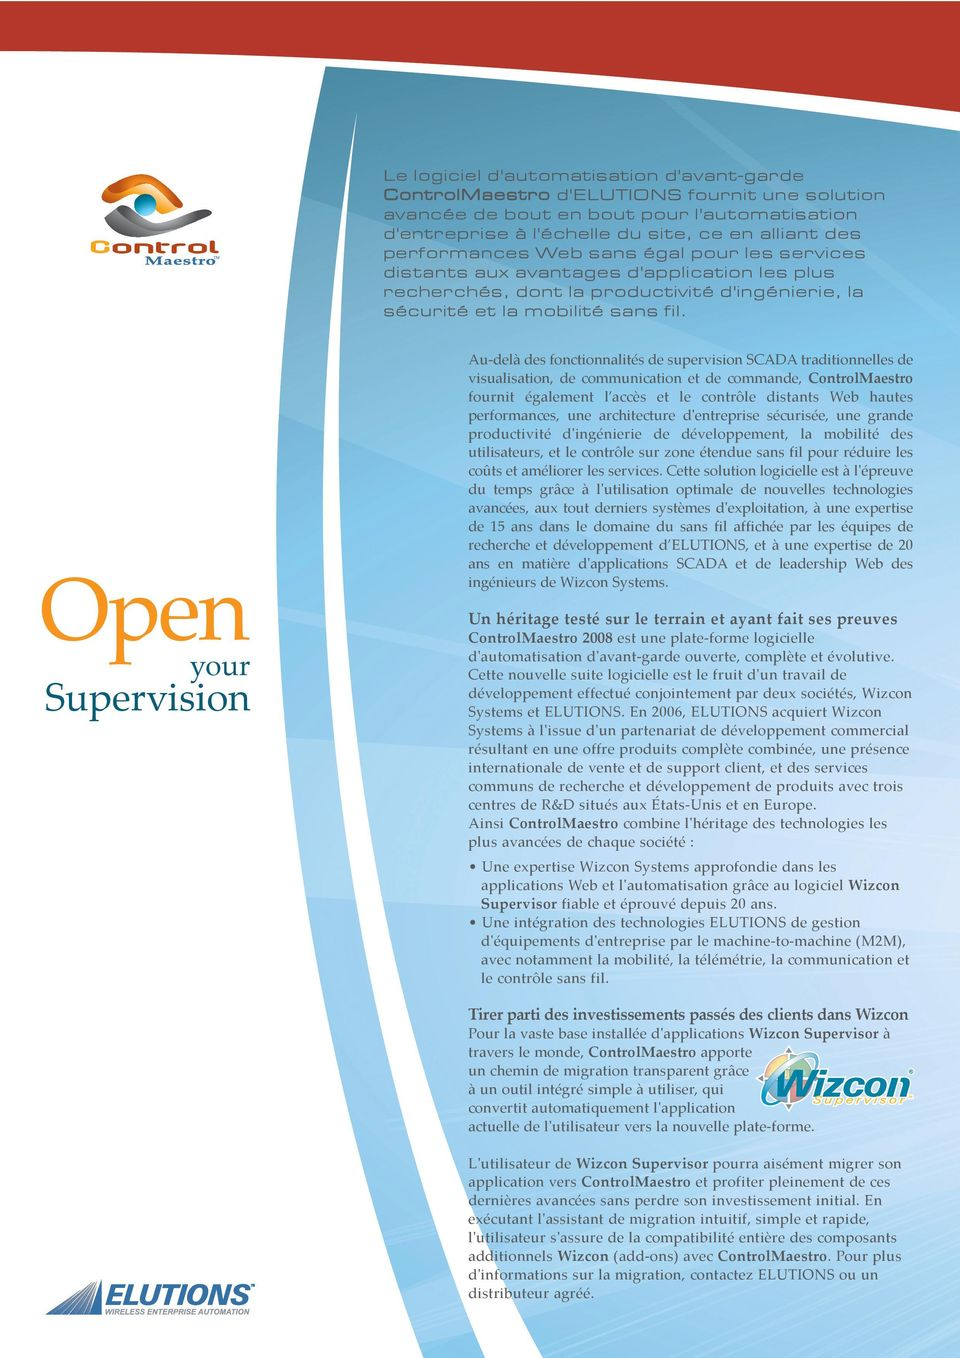 Open your Supervision Au-delà des fonctionnalités de supervision SCADA traditionnelles de visualisation, de communication et de commande, ControlMaestro fournit également l accès et le contrôle